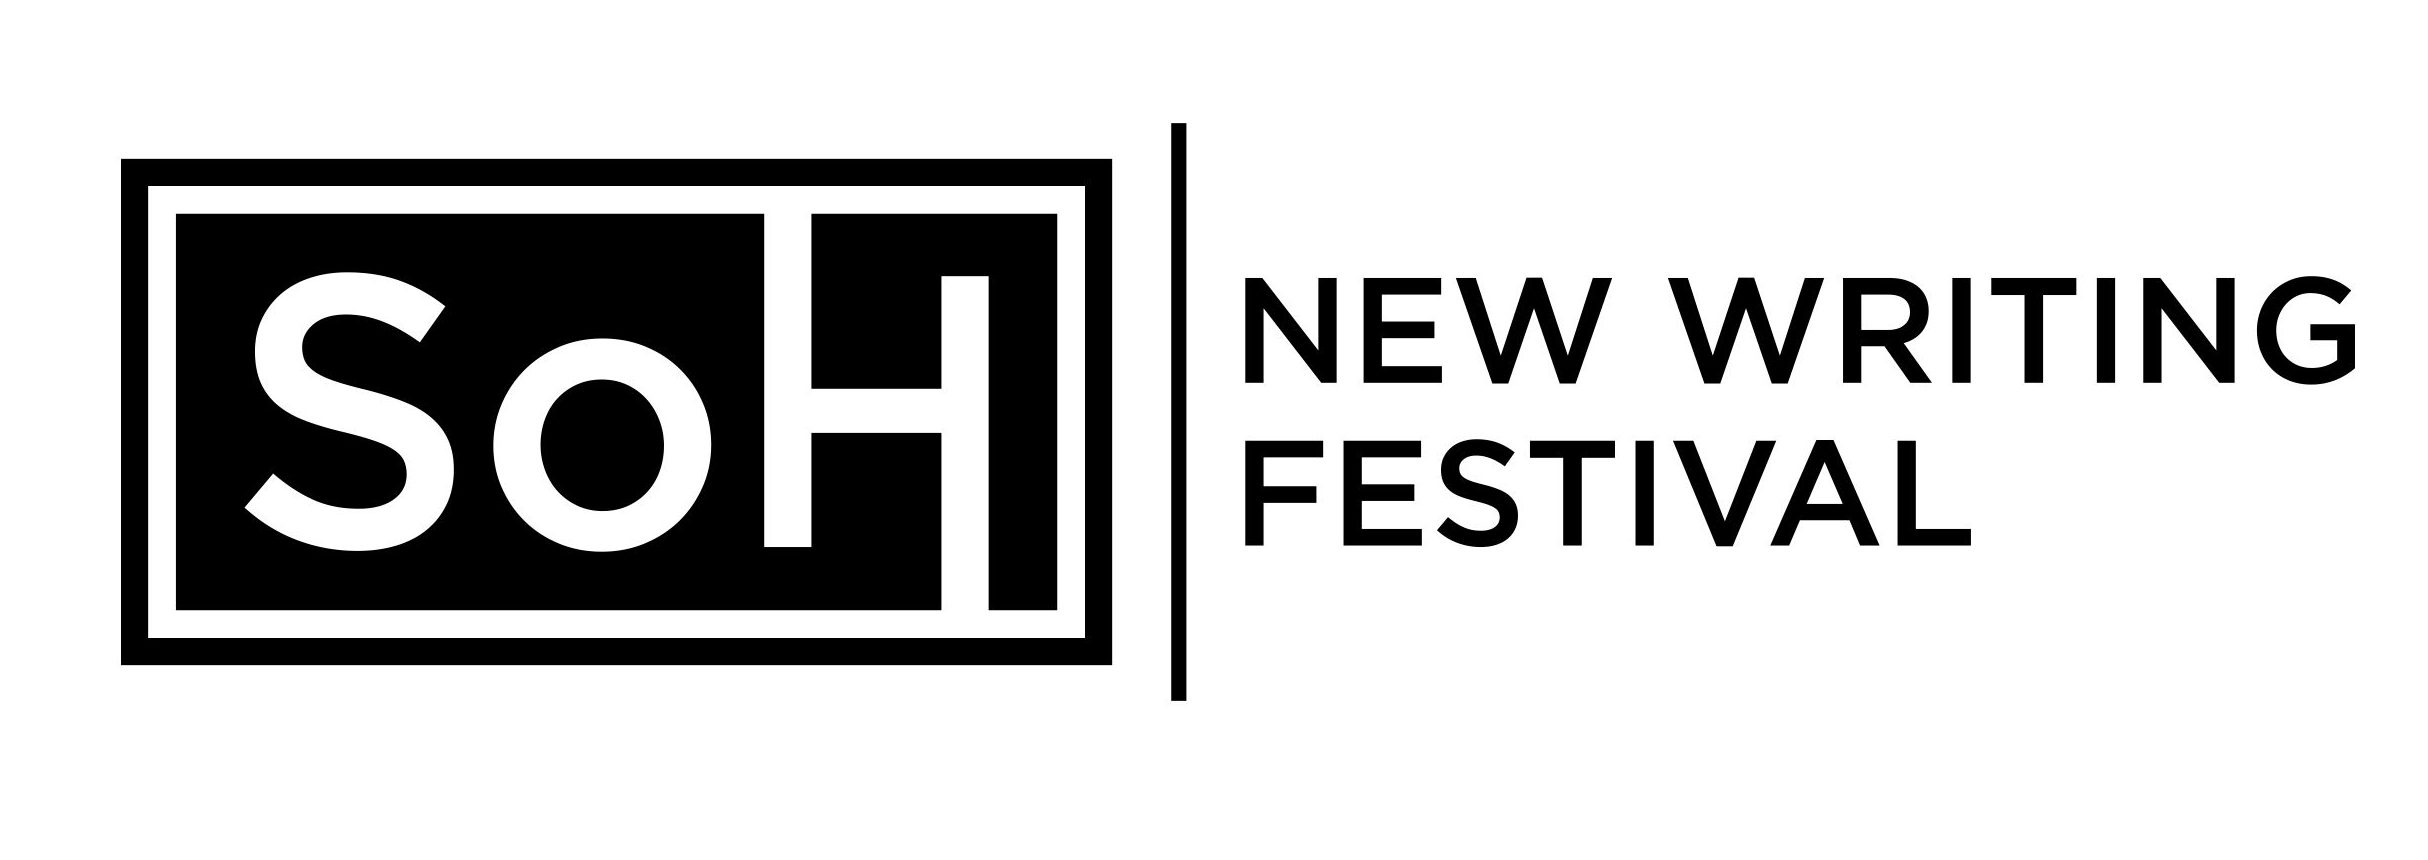 School of Humanities New Writing Festival